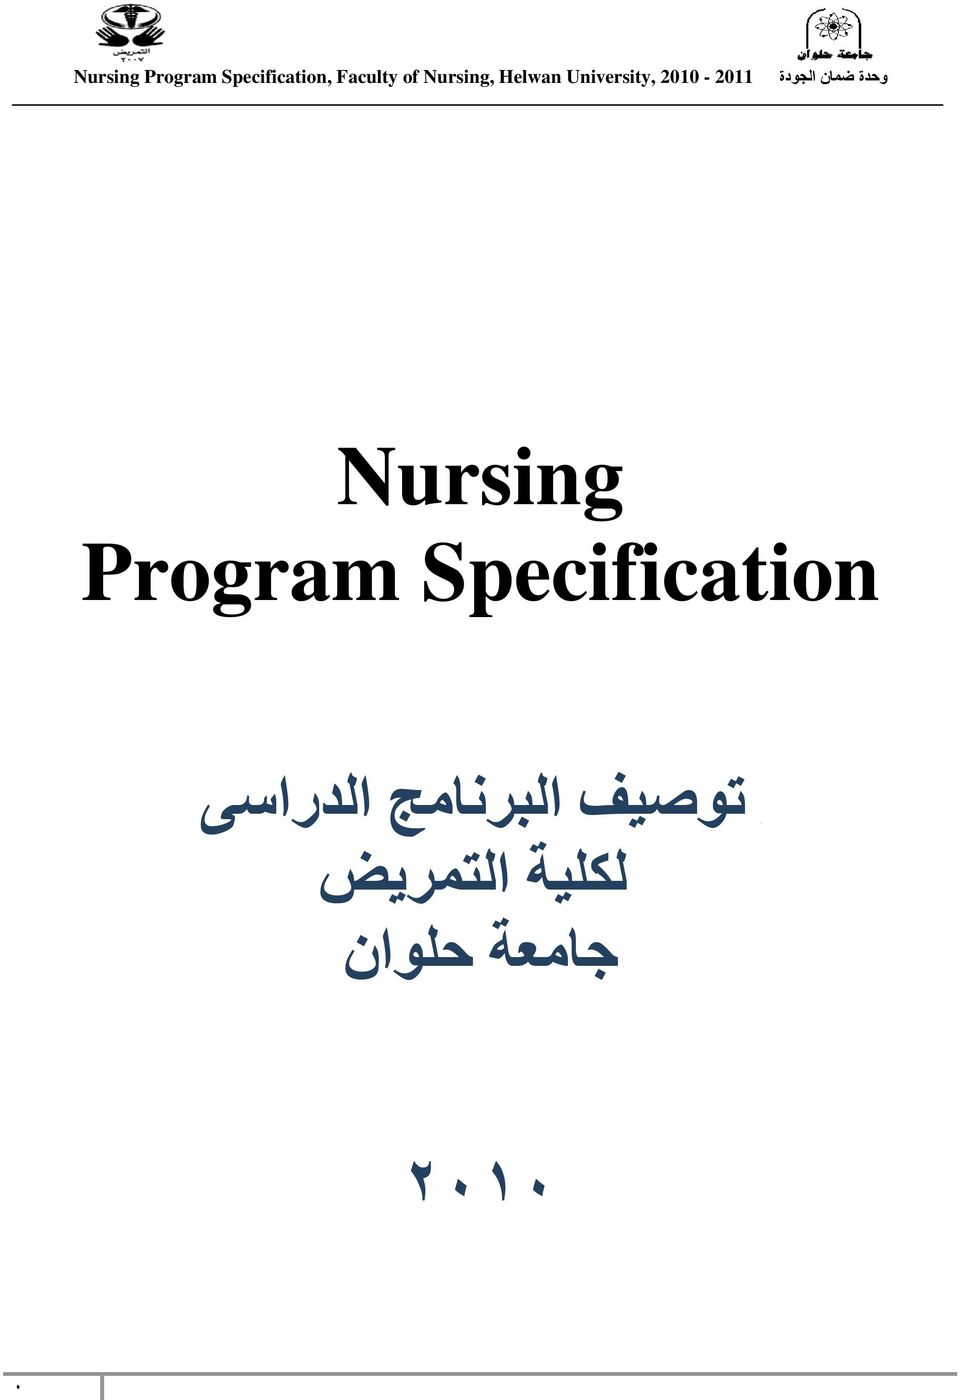 Nursing, Helwan Nursing Program Specification